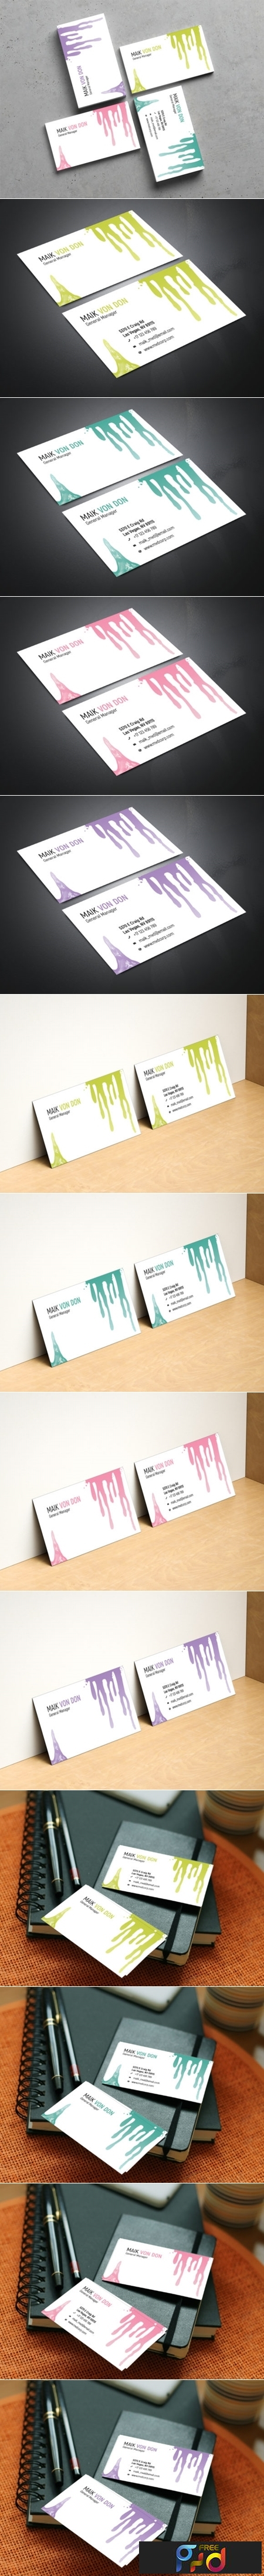 Business Card 959775 1